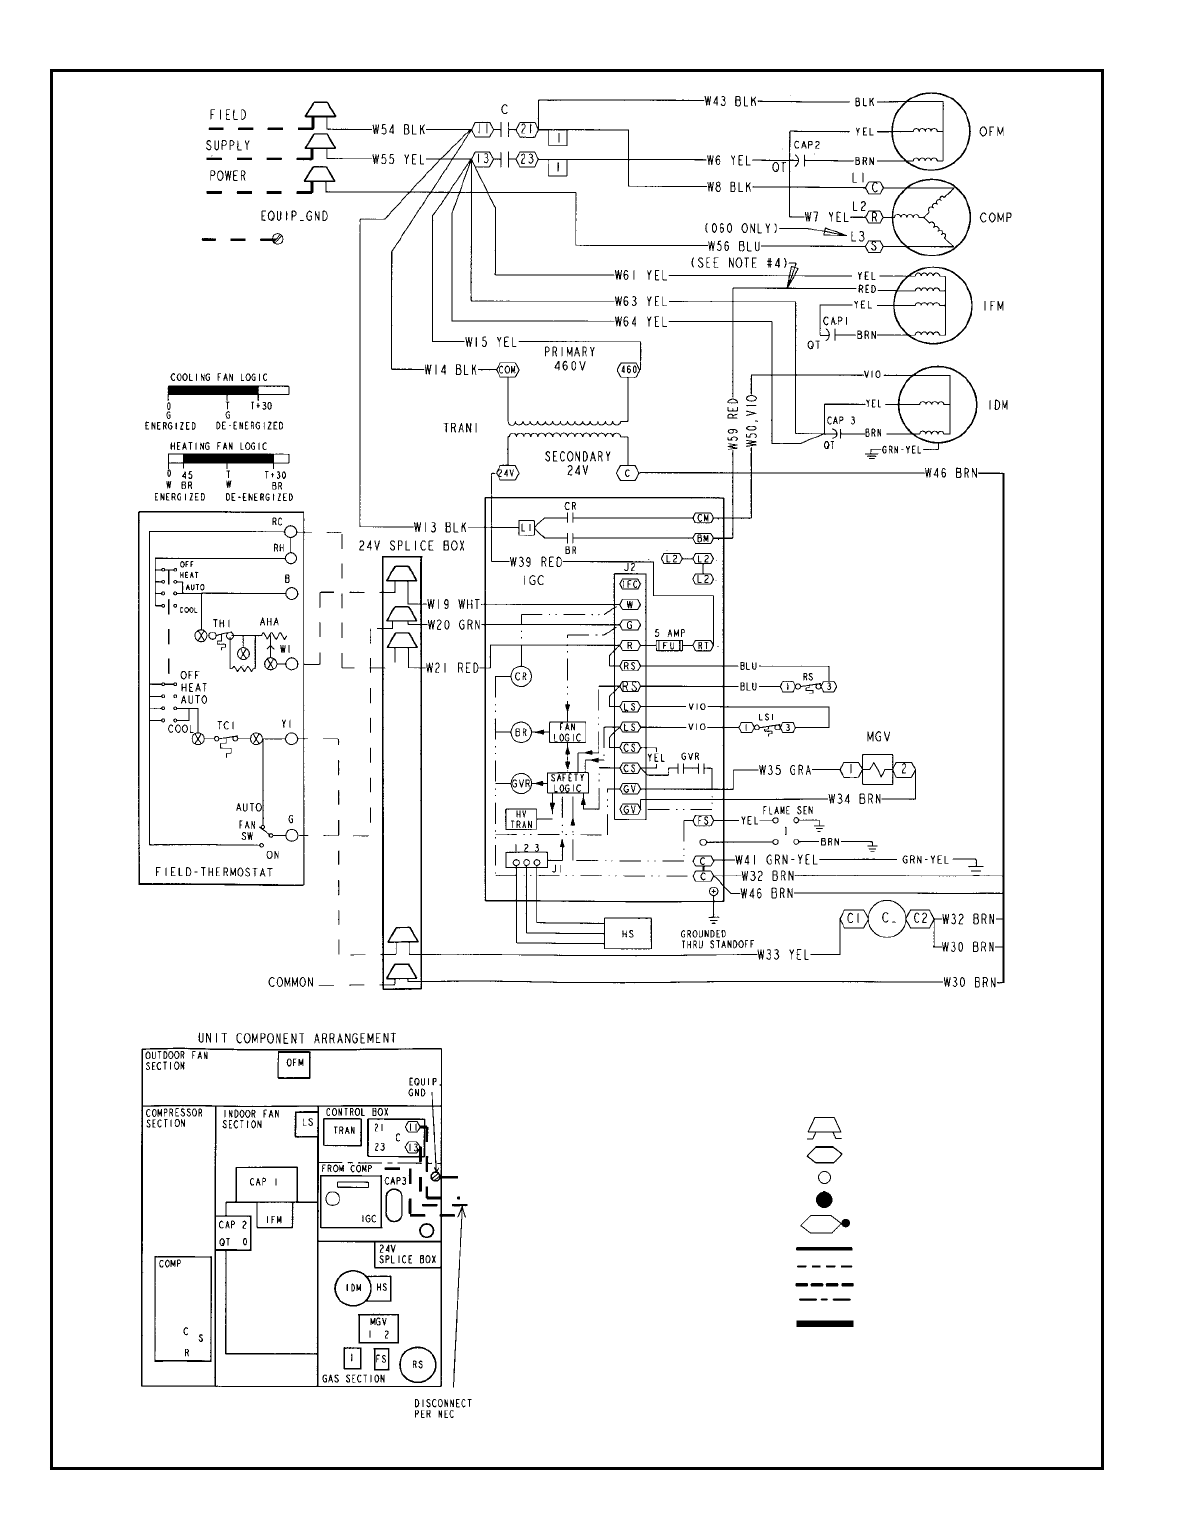 Bryant 582A TYPICAL WIRING SCHEMATIC, 582A036-060; 460-3-60